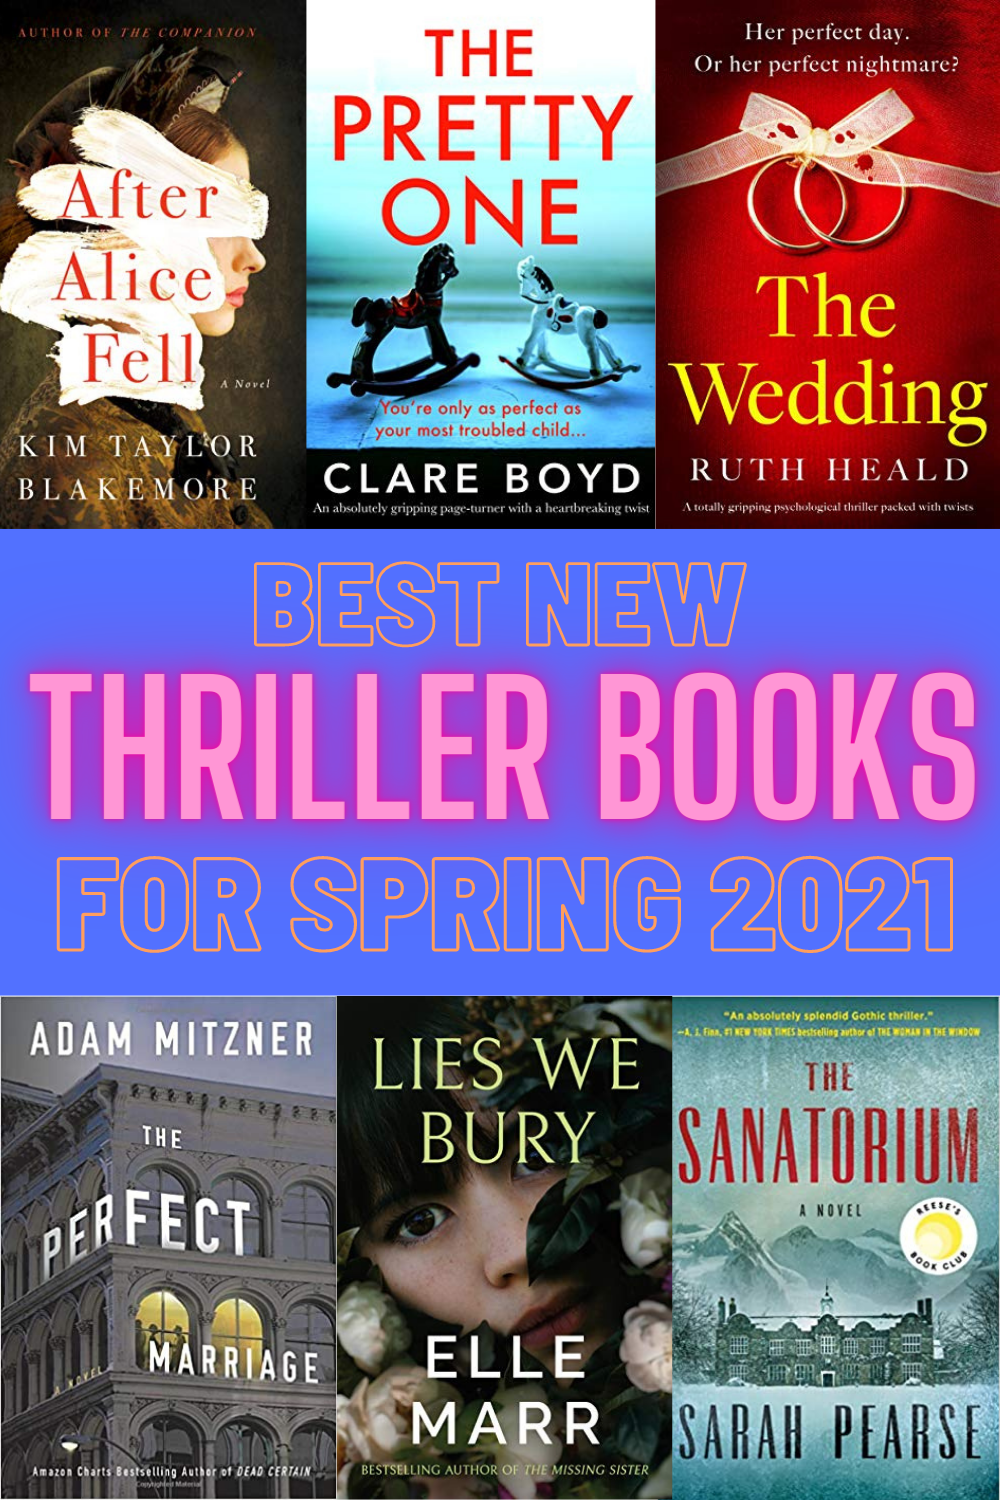 6 New Thriller Books For Spring 2021 - Looking for a new thriller book to read? Here are the 6 best psychological thrillers for Spring 2021. | Psychological Thriller Books - Best Thriller Books - New Thrillers to Read for 2021